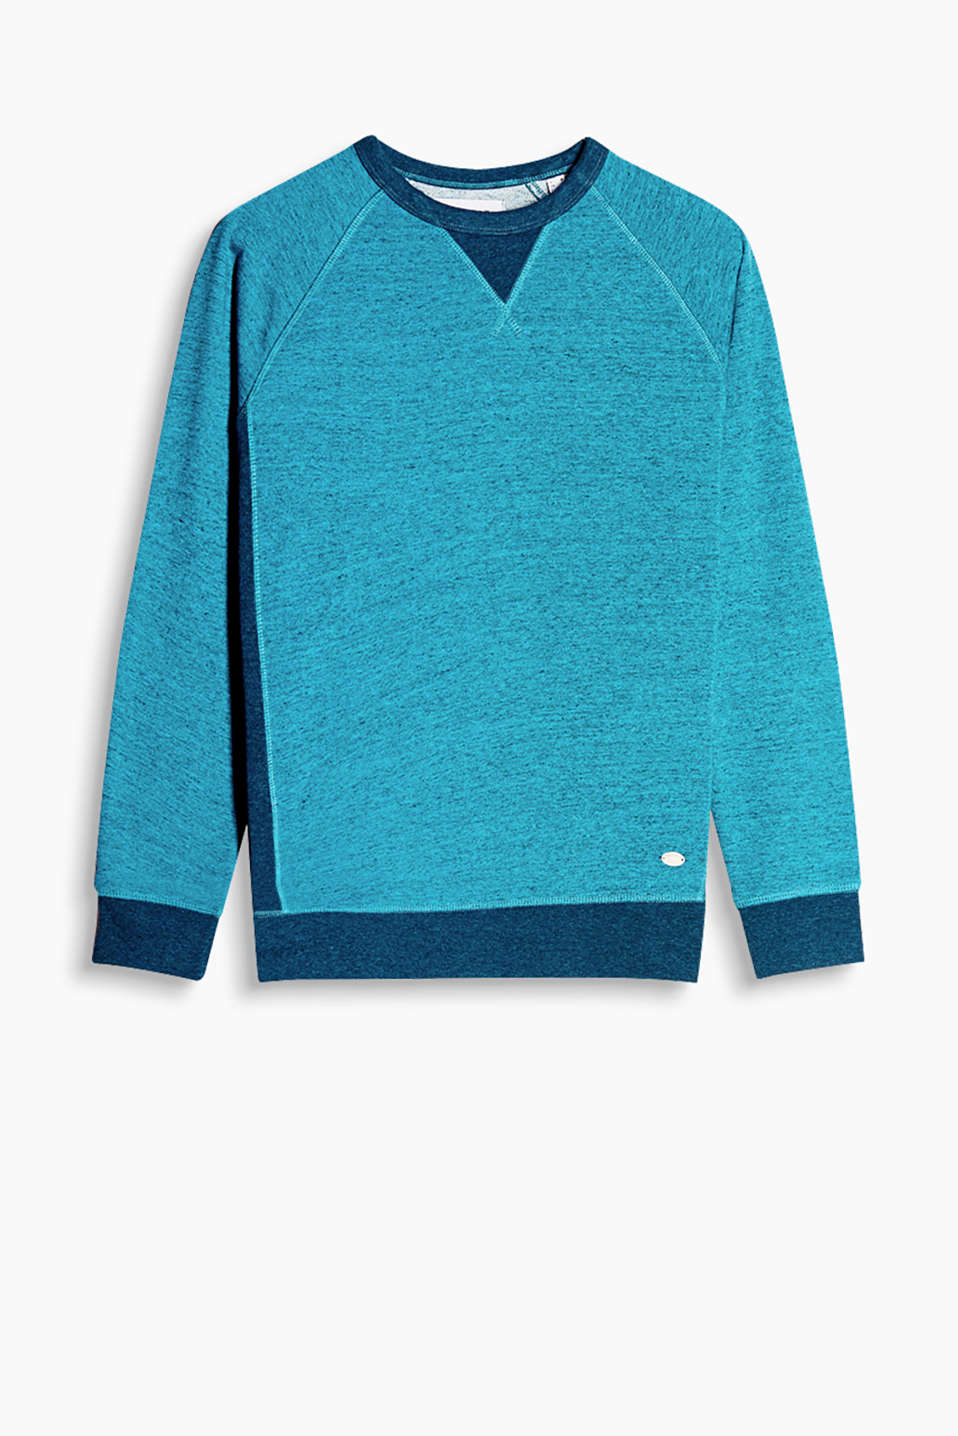 Cotton blend sweatshirt with contrasting colour borders along the round neckline, sleeve ends and bottom hem